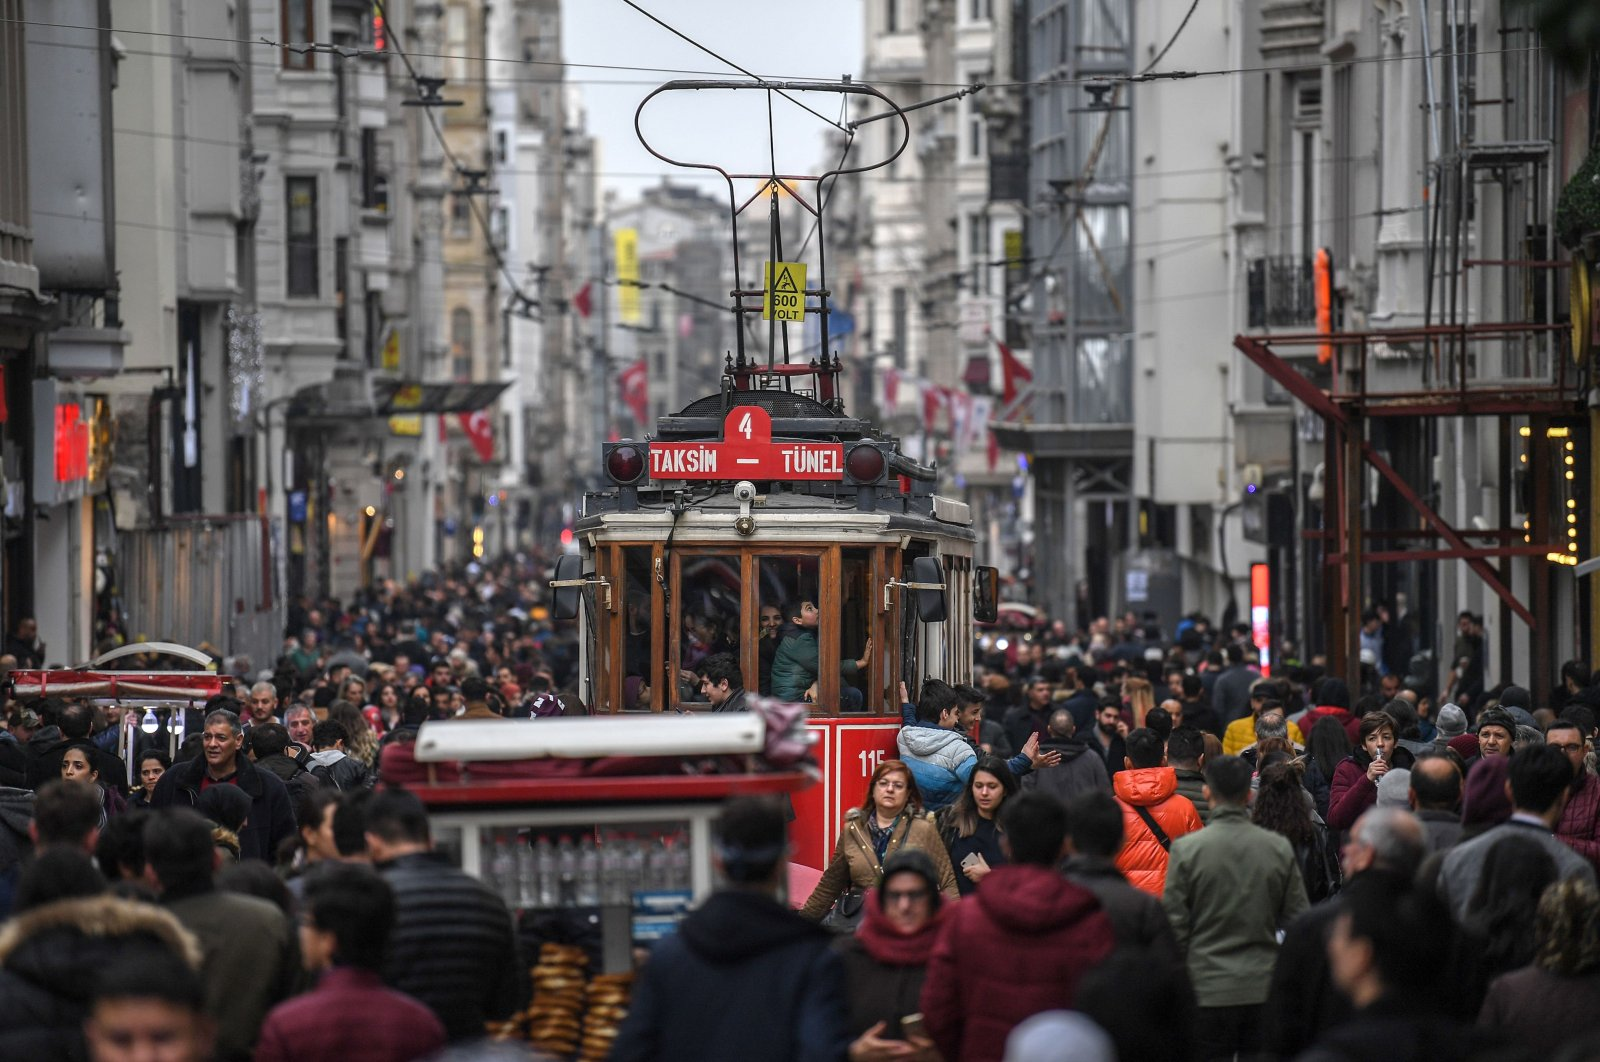 A nostalgic tram drives through a crowd in İstiklal Avenue in Taksim, Istanbul, Jan. 25, 2019. (AFP Photo)